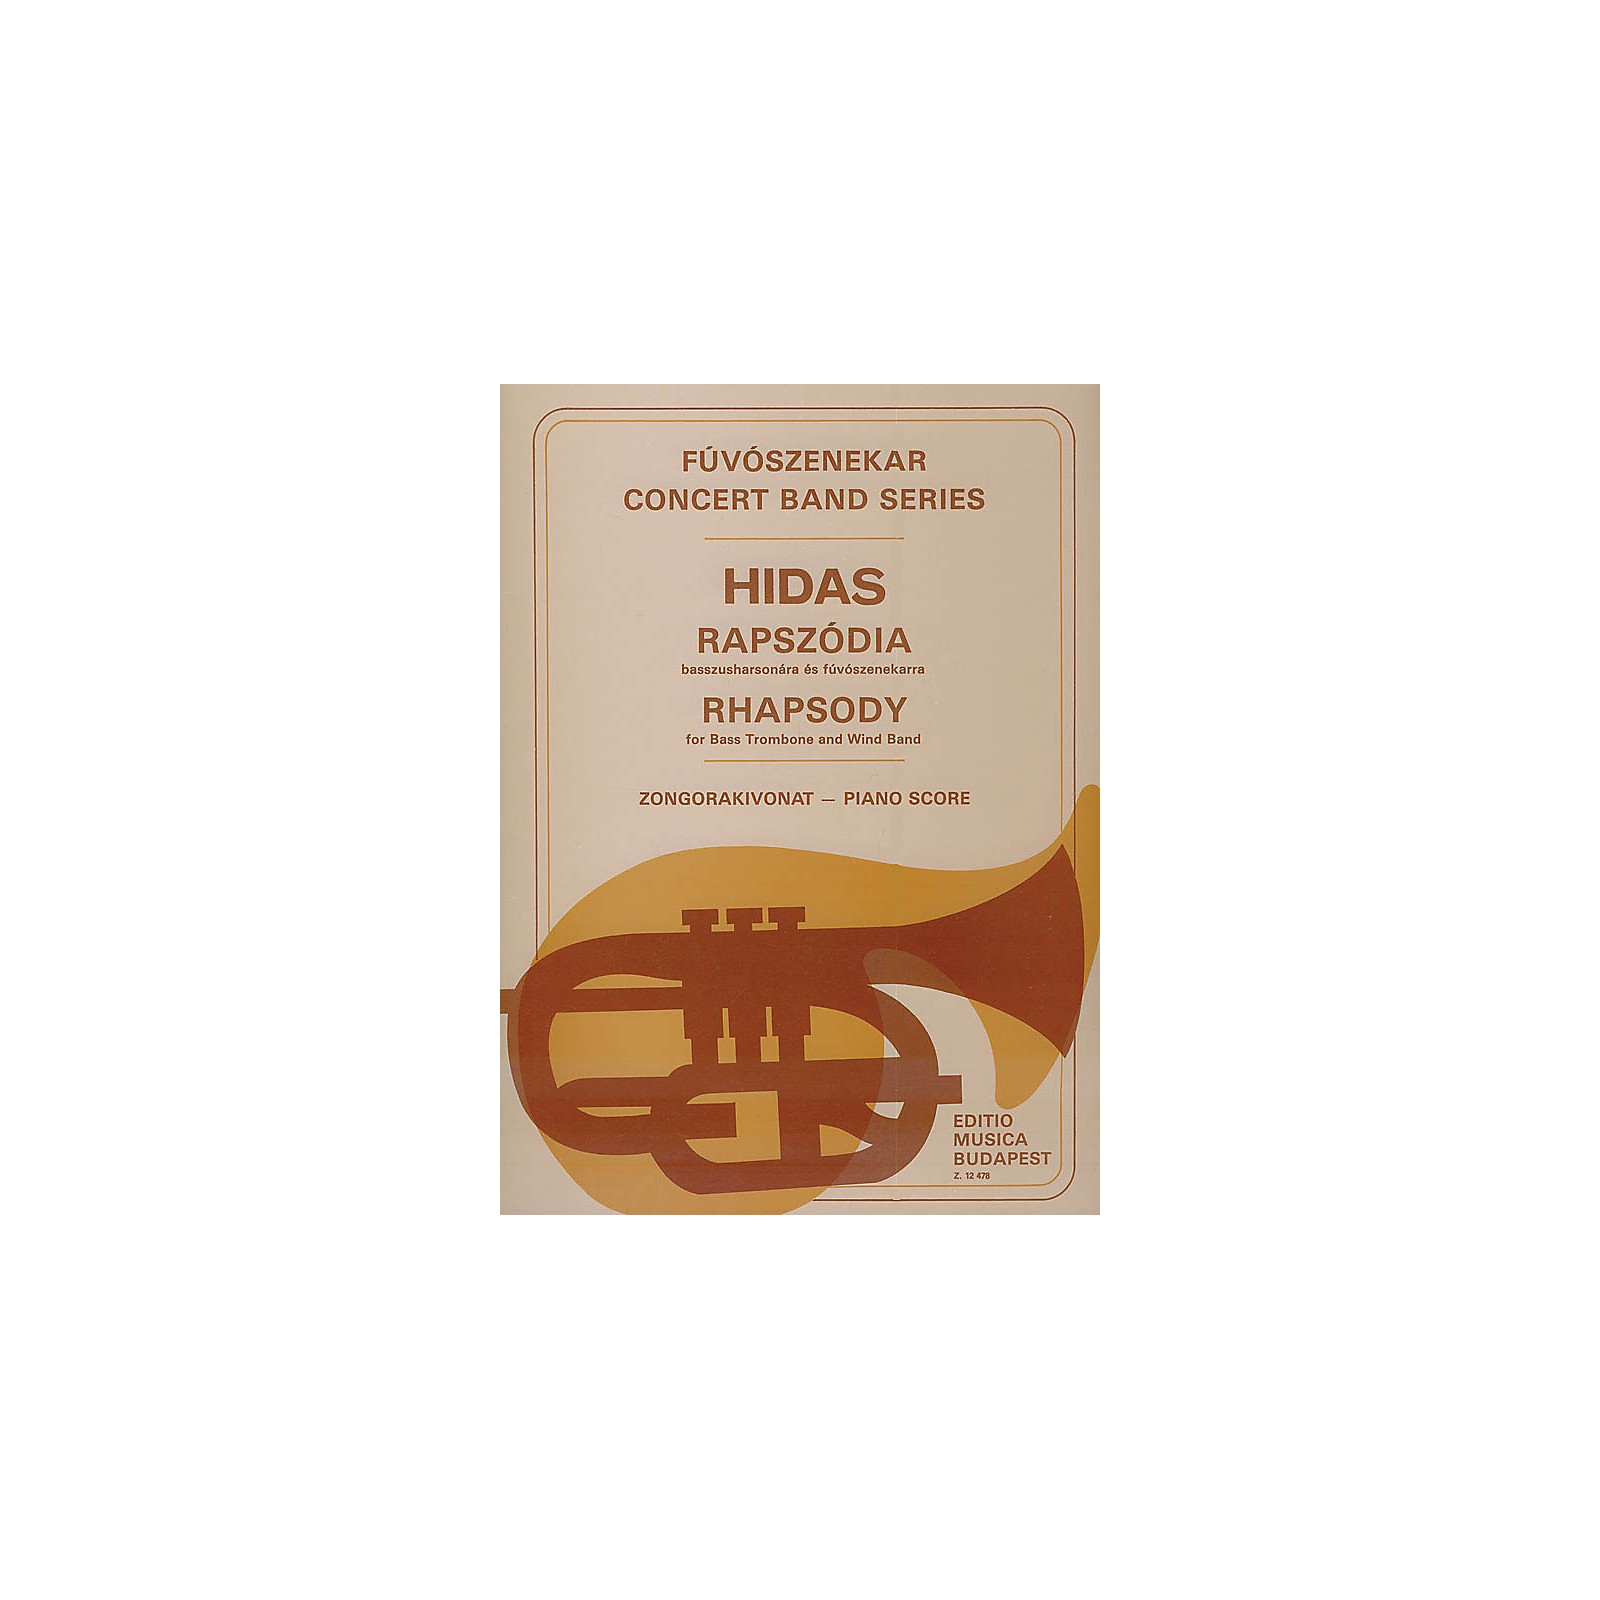 Editio Musica Budapest Rhapsody for Bass Trombone and Wind Band EMB Series by Frigyes Hidas